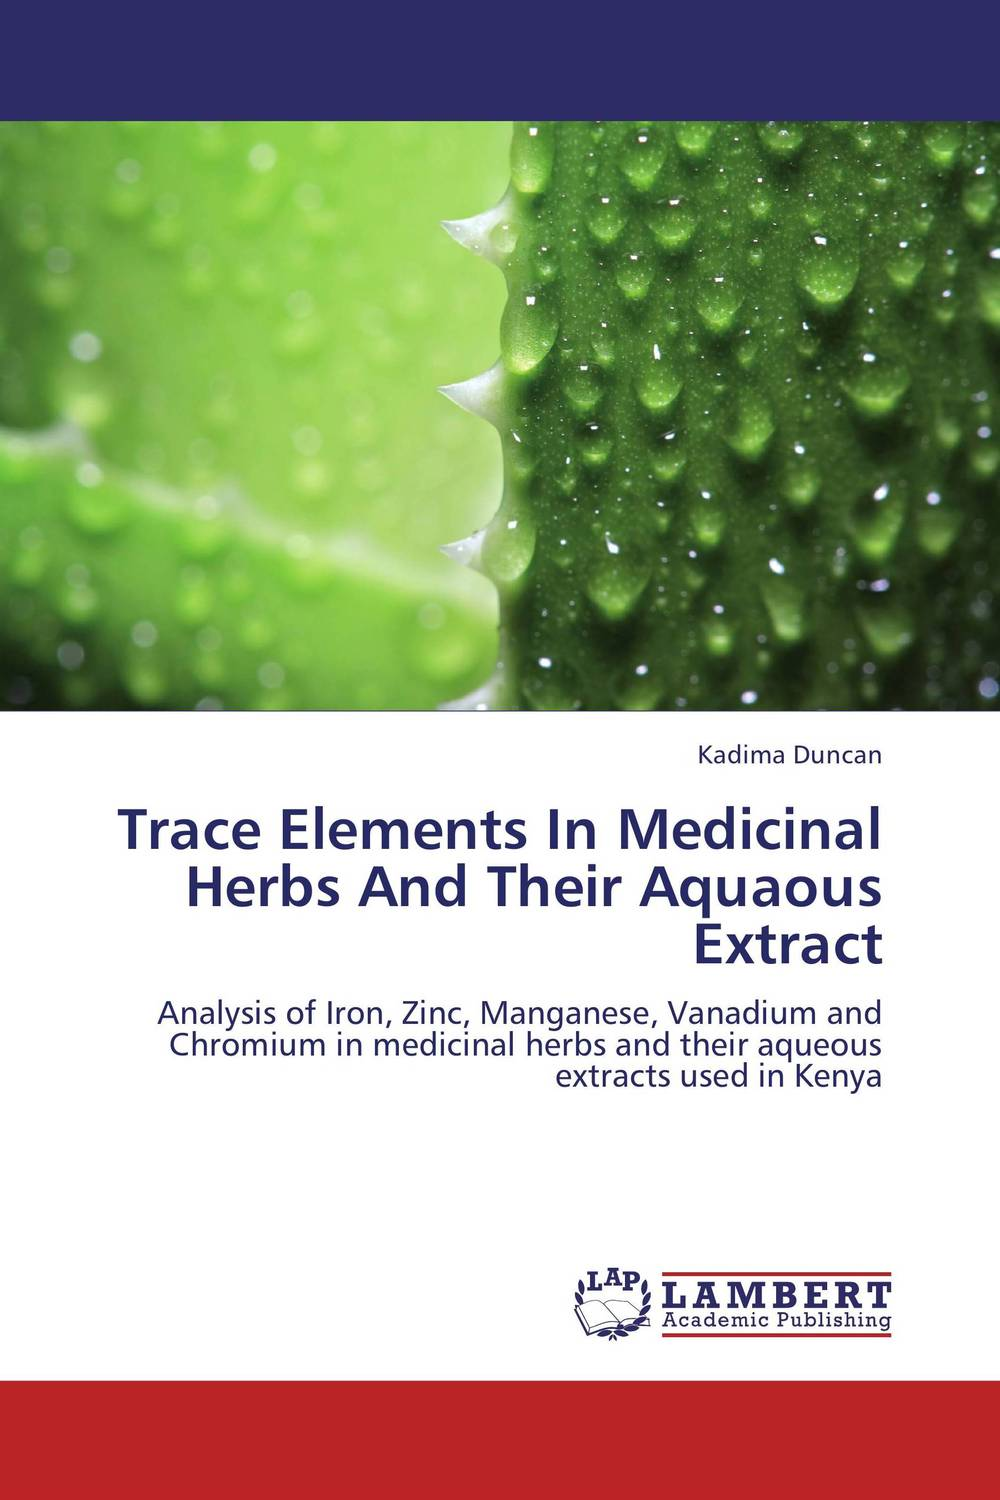 Trace Elements In Medicinal Herbs And Their Aquaous Extract evaluation of aqueous solubility of hydroxamic acids by pls modelling